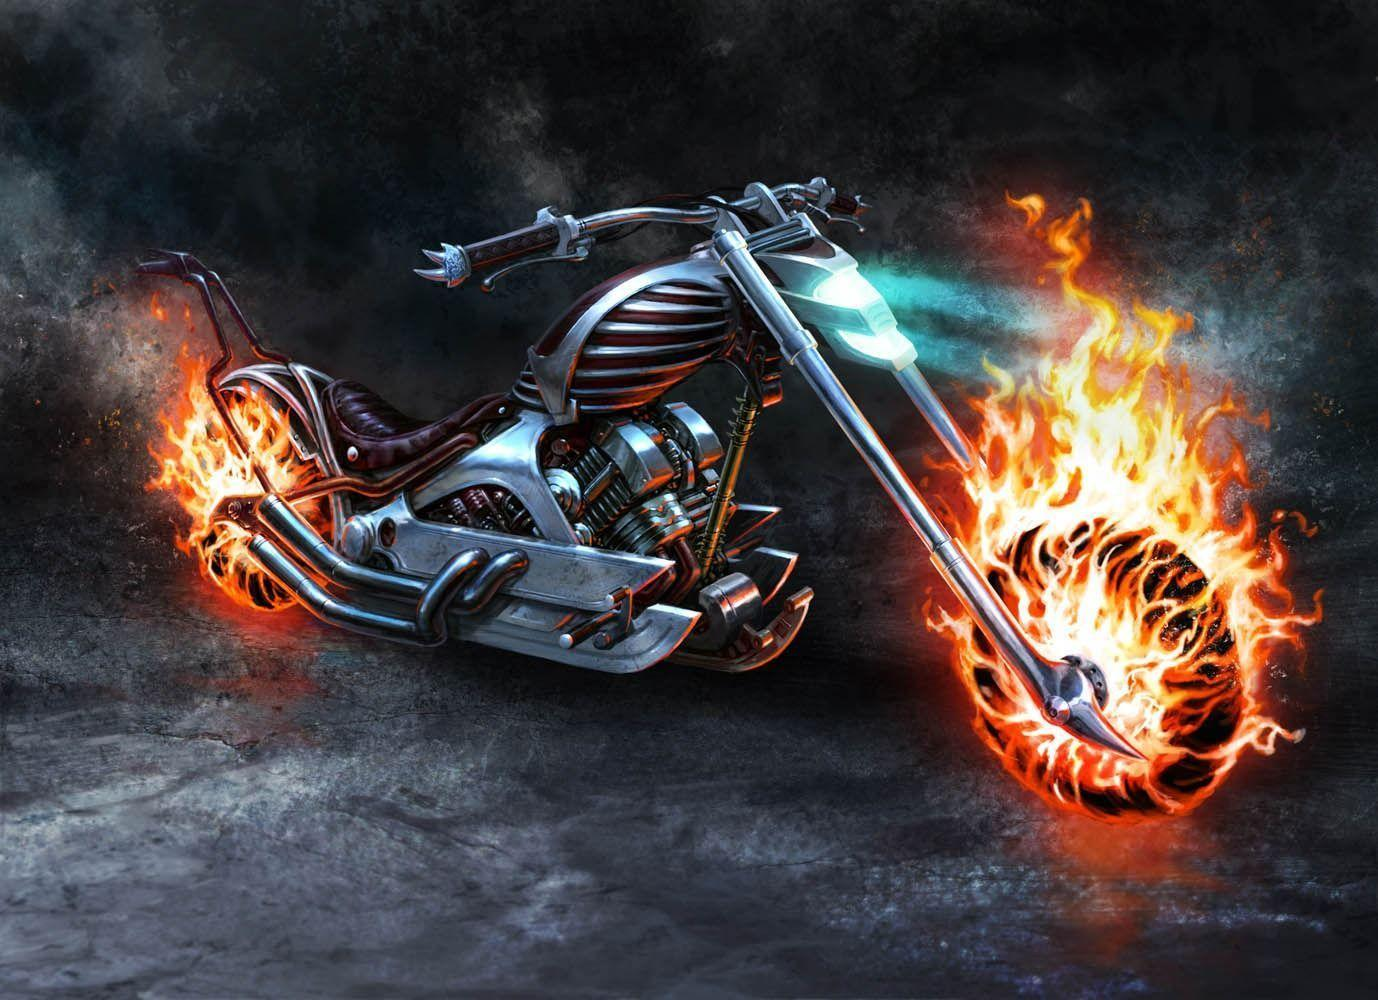 Ghost Rider Bike Wallpapers 1378x1000